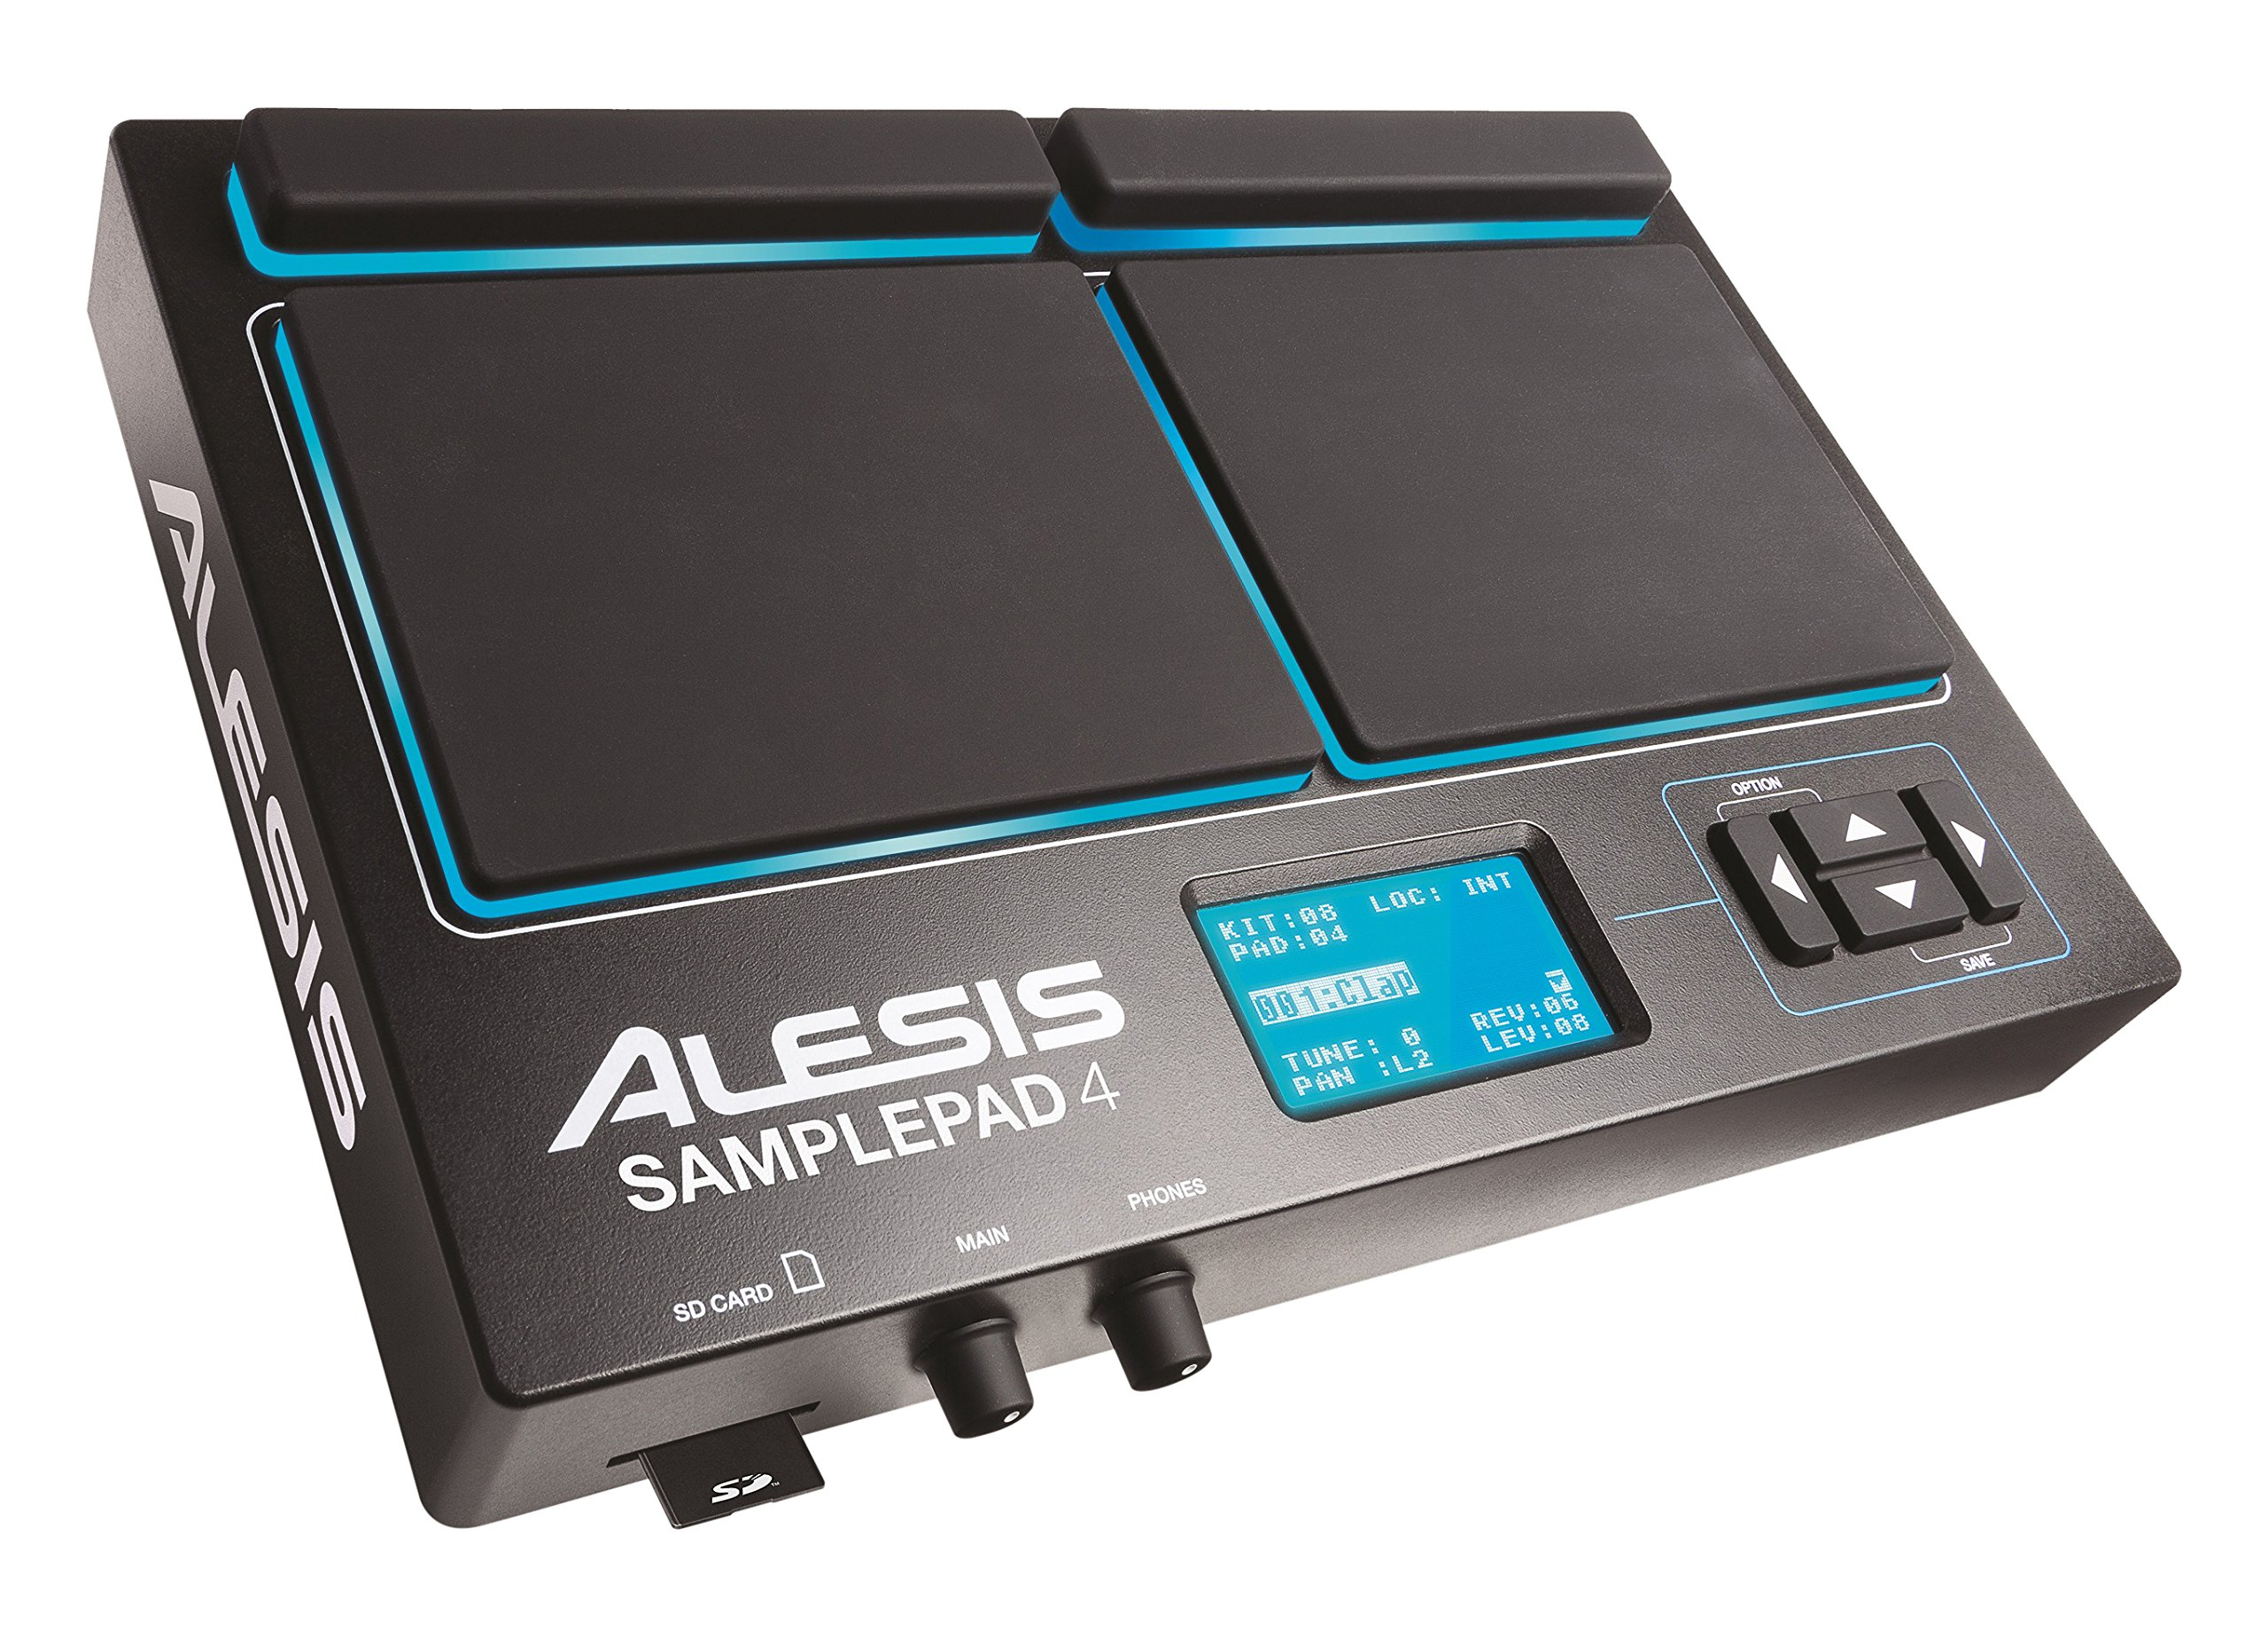 Alesis SamplePad 4 | Compact 4-Pad Percussion and Sample-Triggering Instrument with SD Card Slot